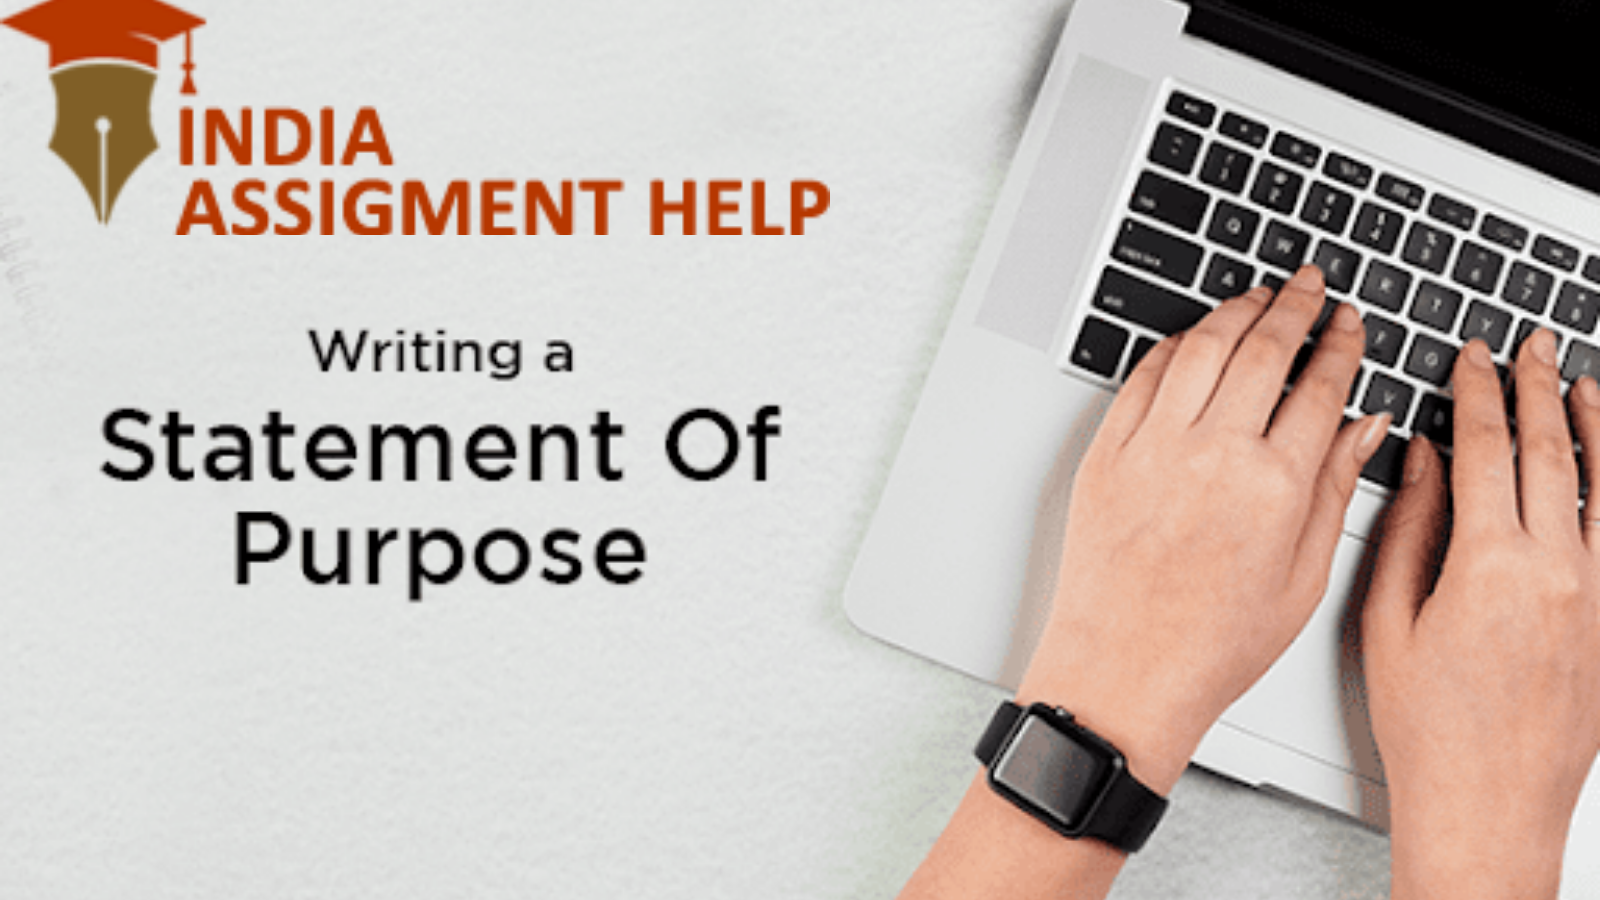 How to Write a Statement of Purpose?